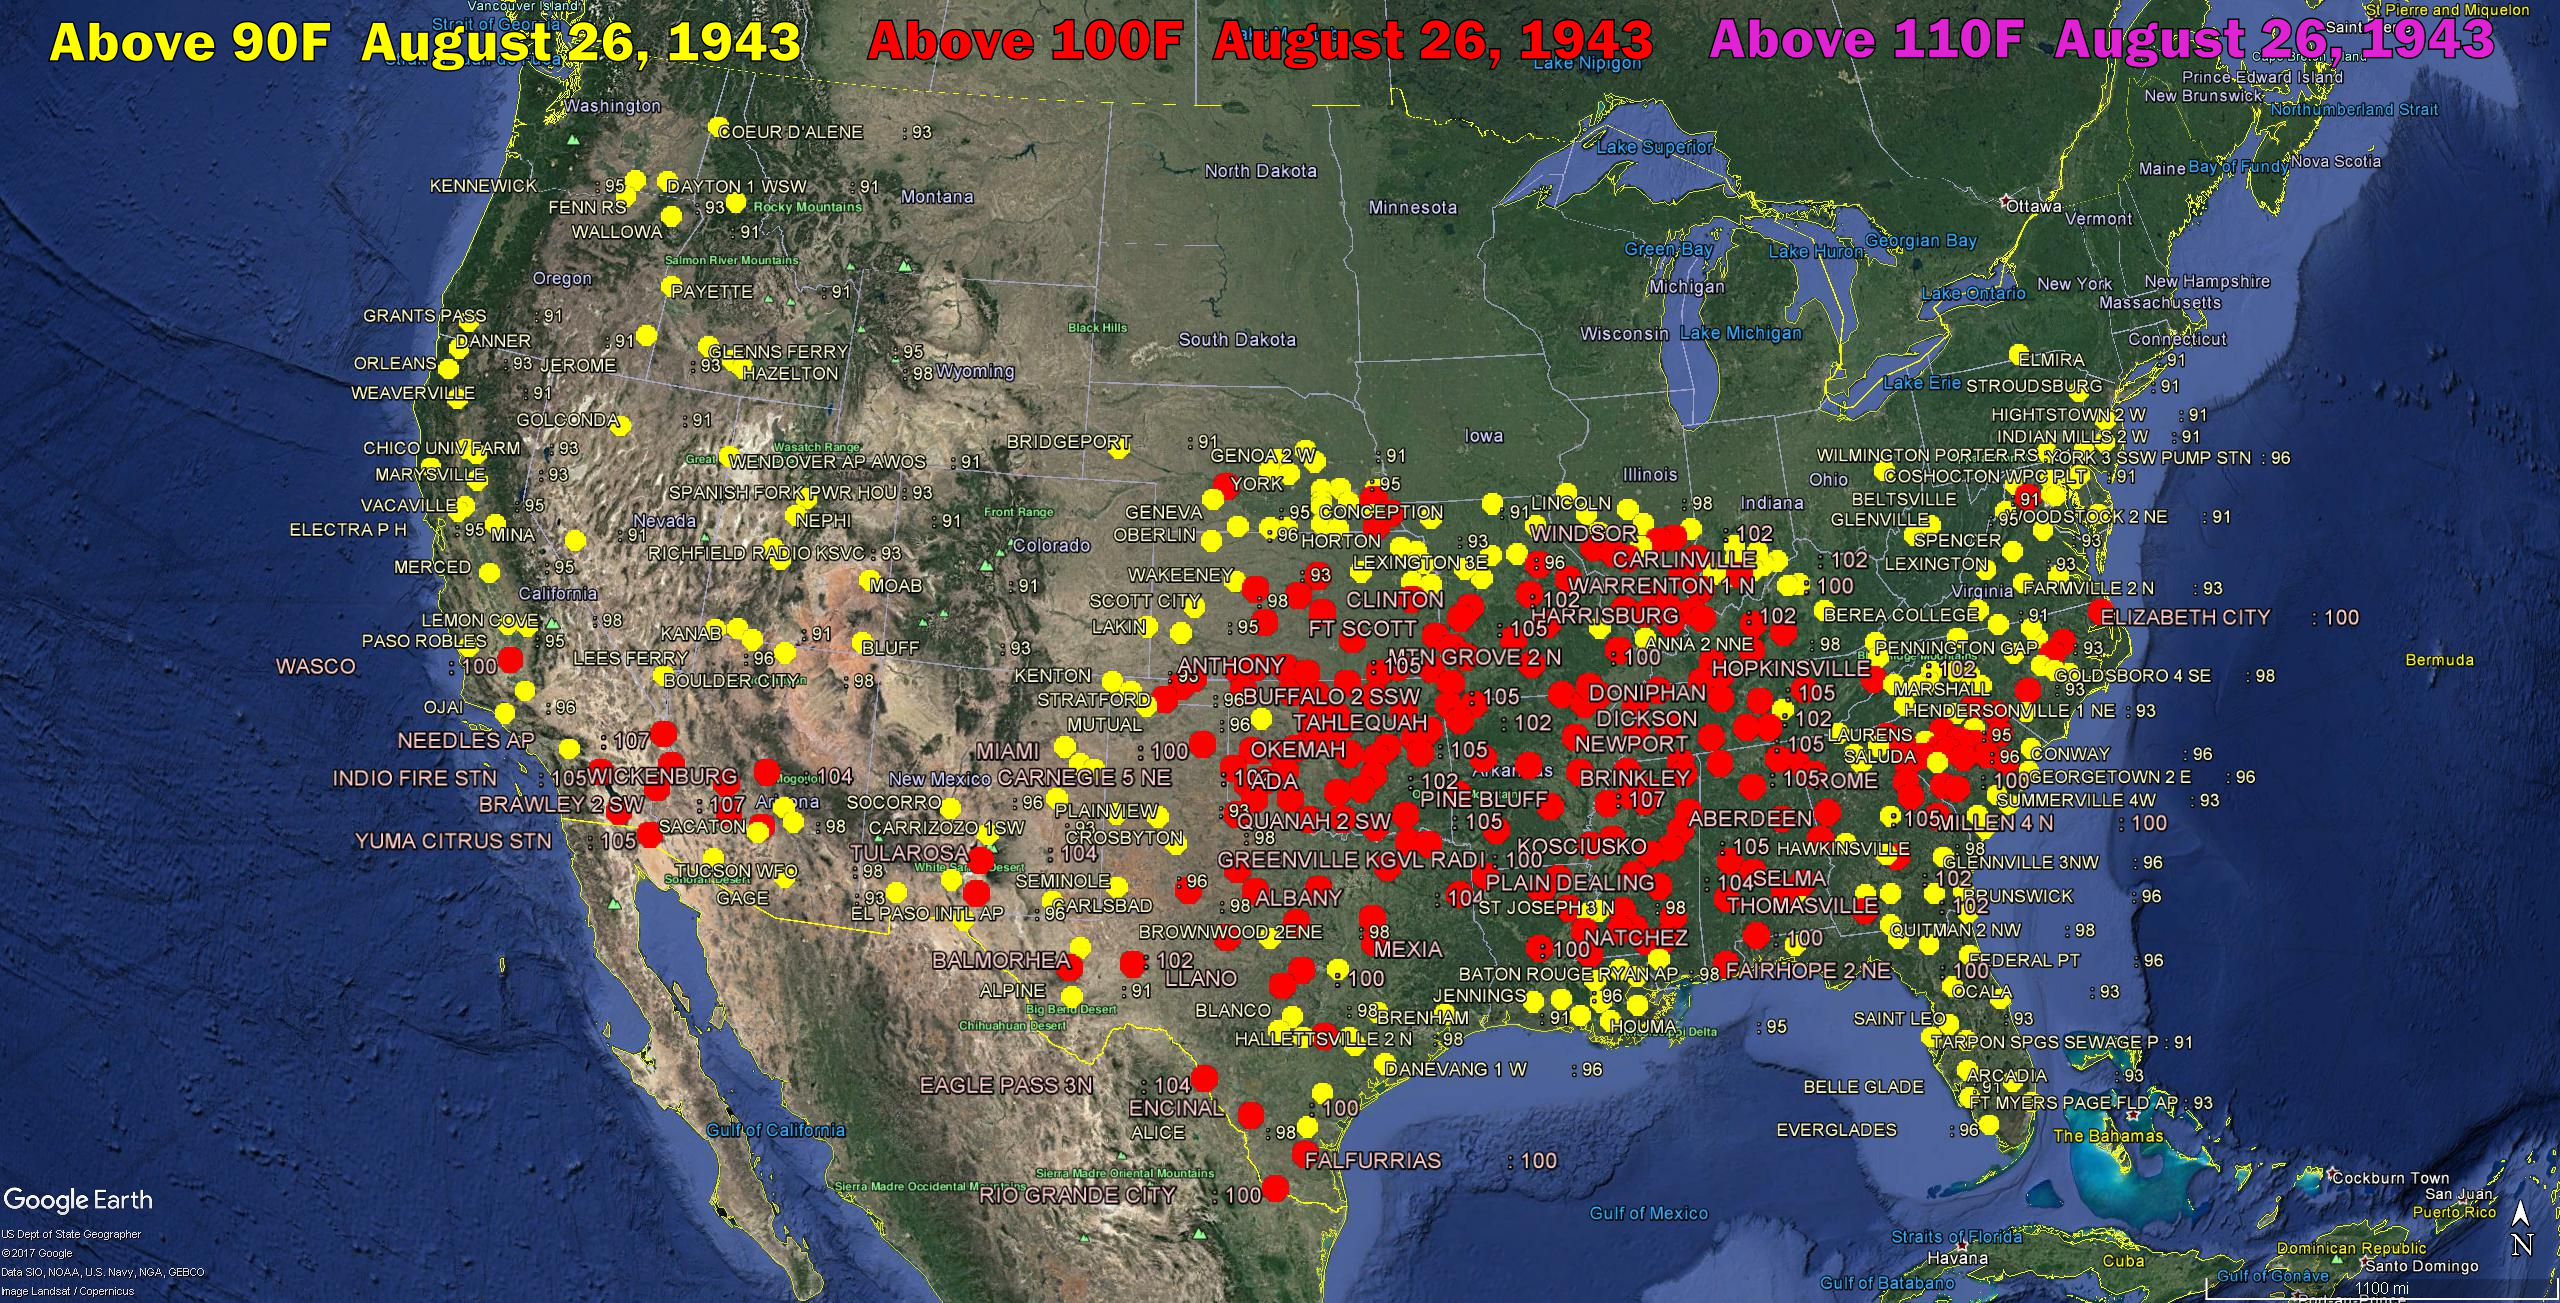 Plummeting August 26 Temperatures In The US The Deplorable Climate